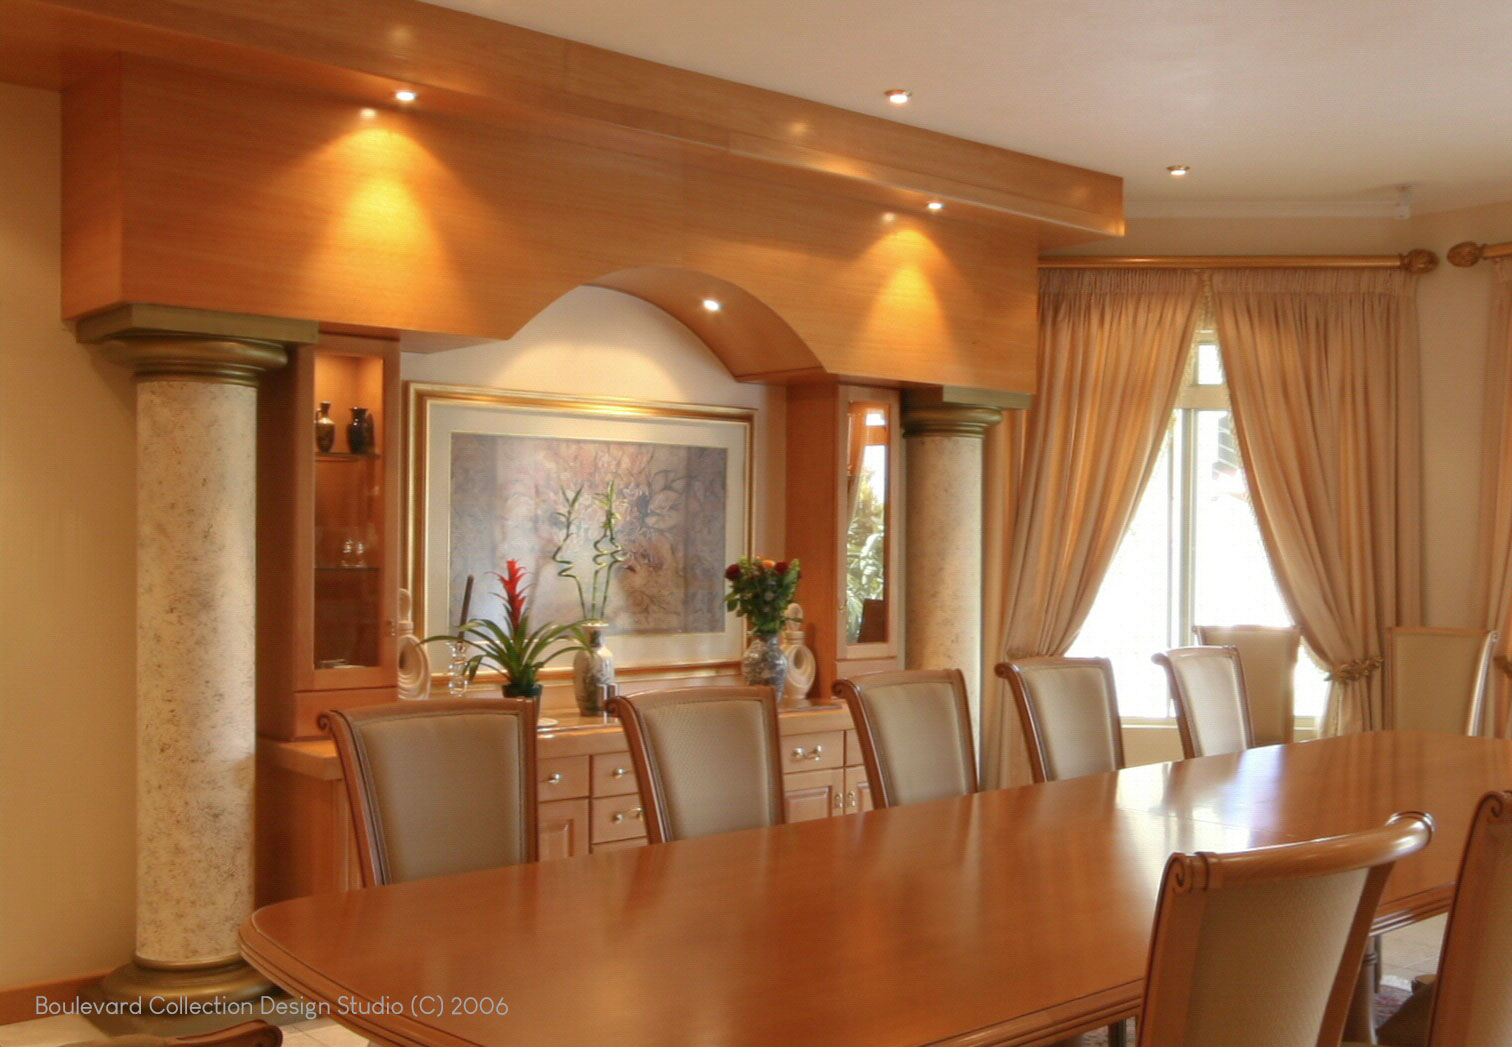 Interior Design vs. Interior Decorating – What is the difference and which one do I need?